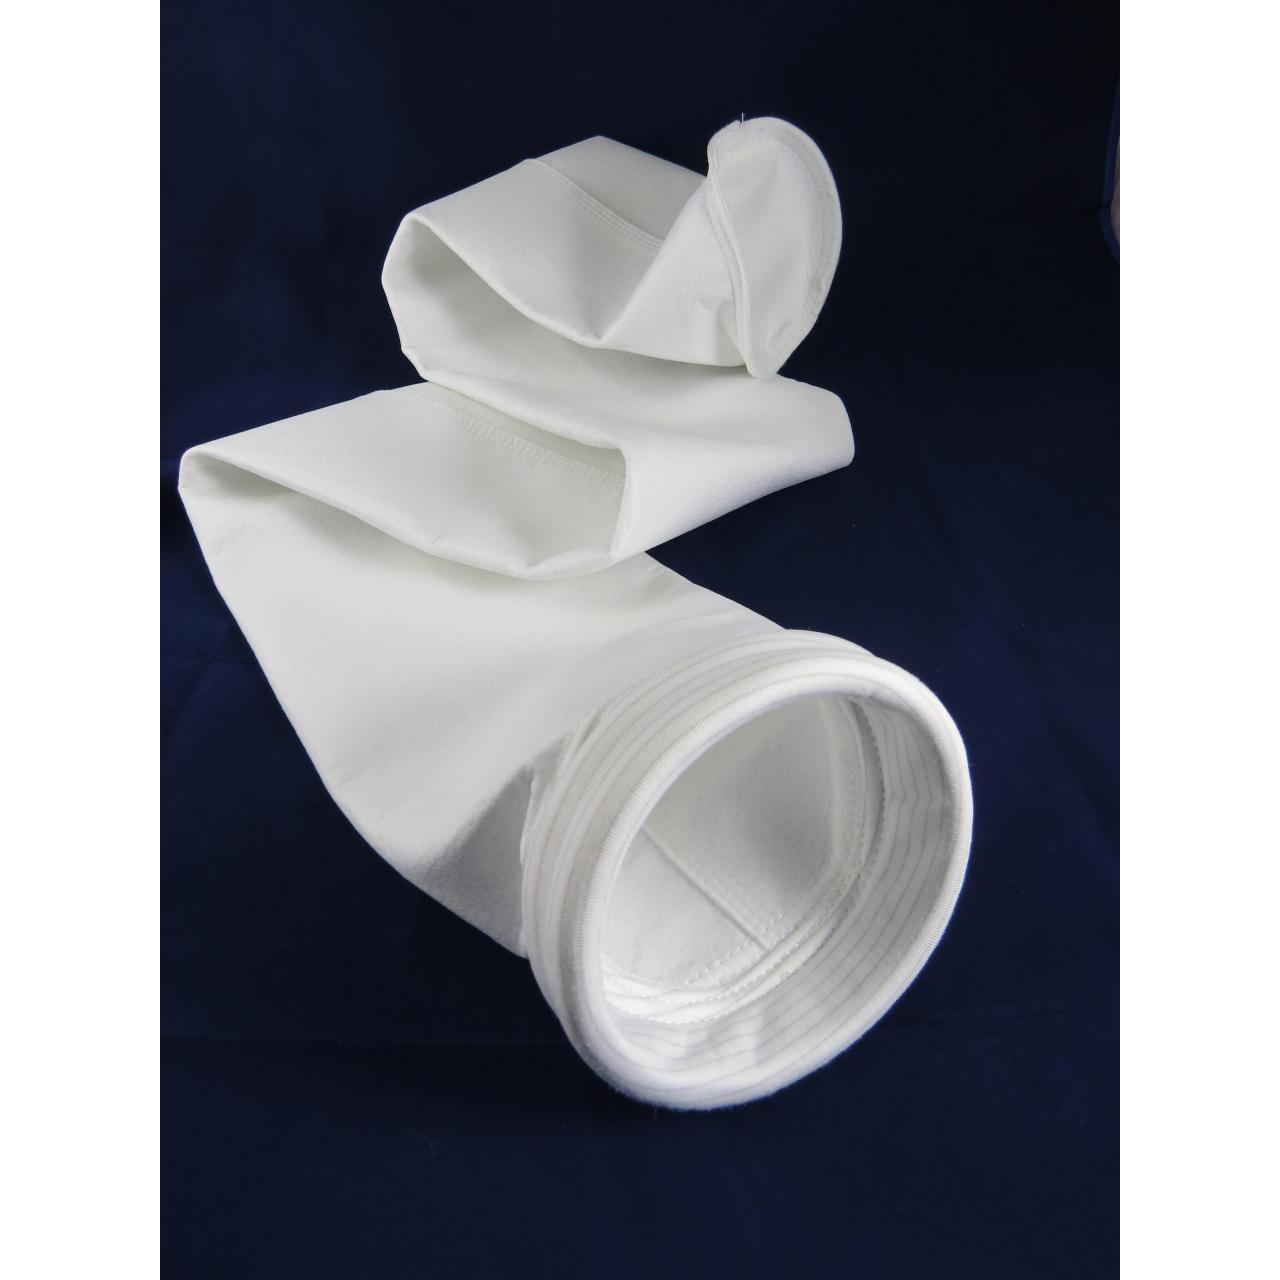 Filter Bags/Dust collector cages